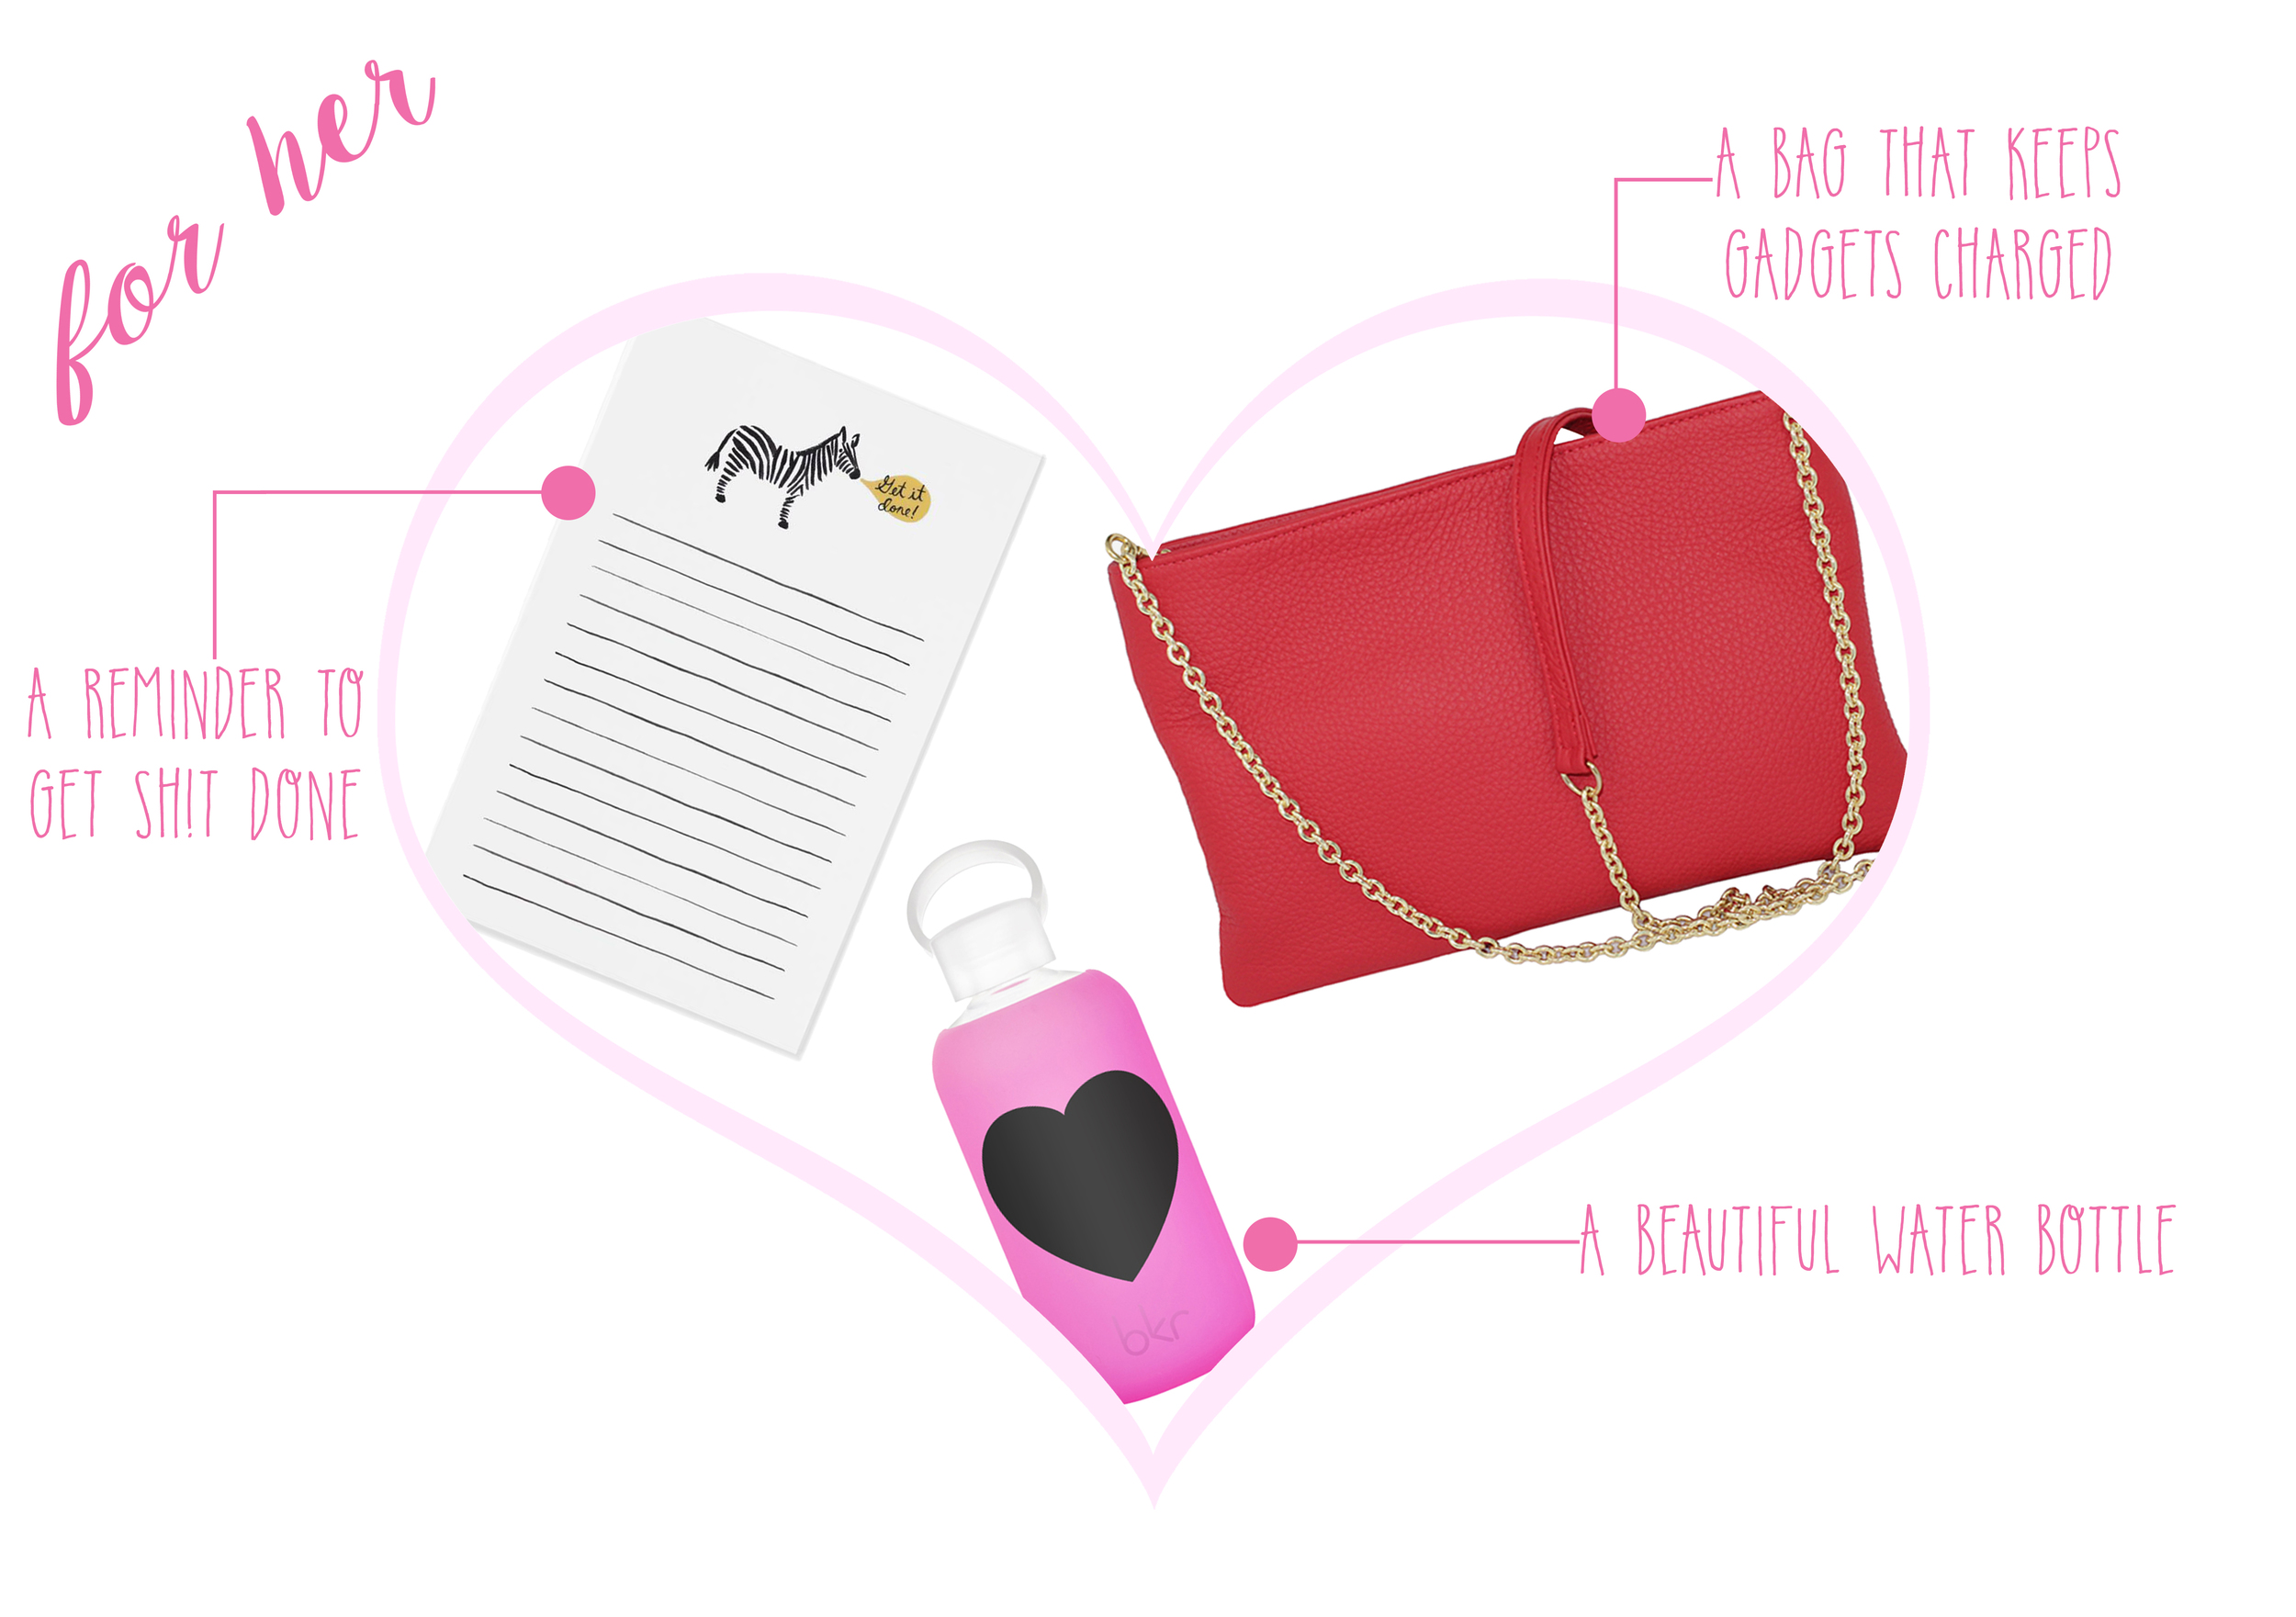 Get it Done notepad  ($8) -  Bkr Bambi Heart Bottle  ($35) -  Empowered all-in-one Bag  ($175)